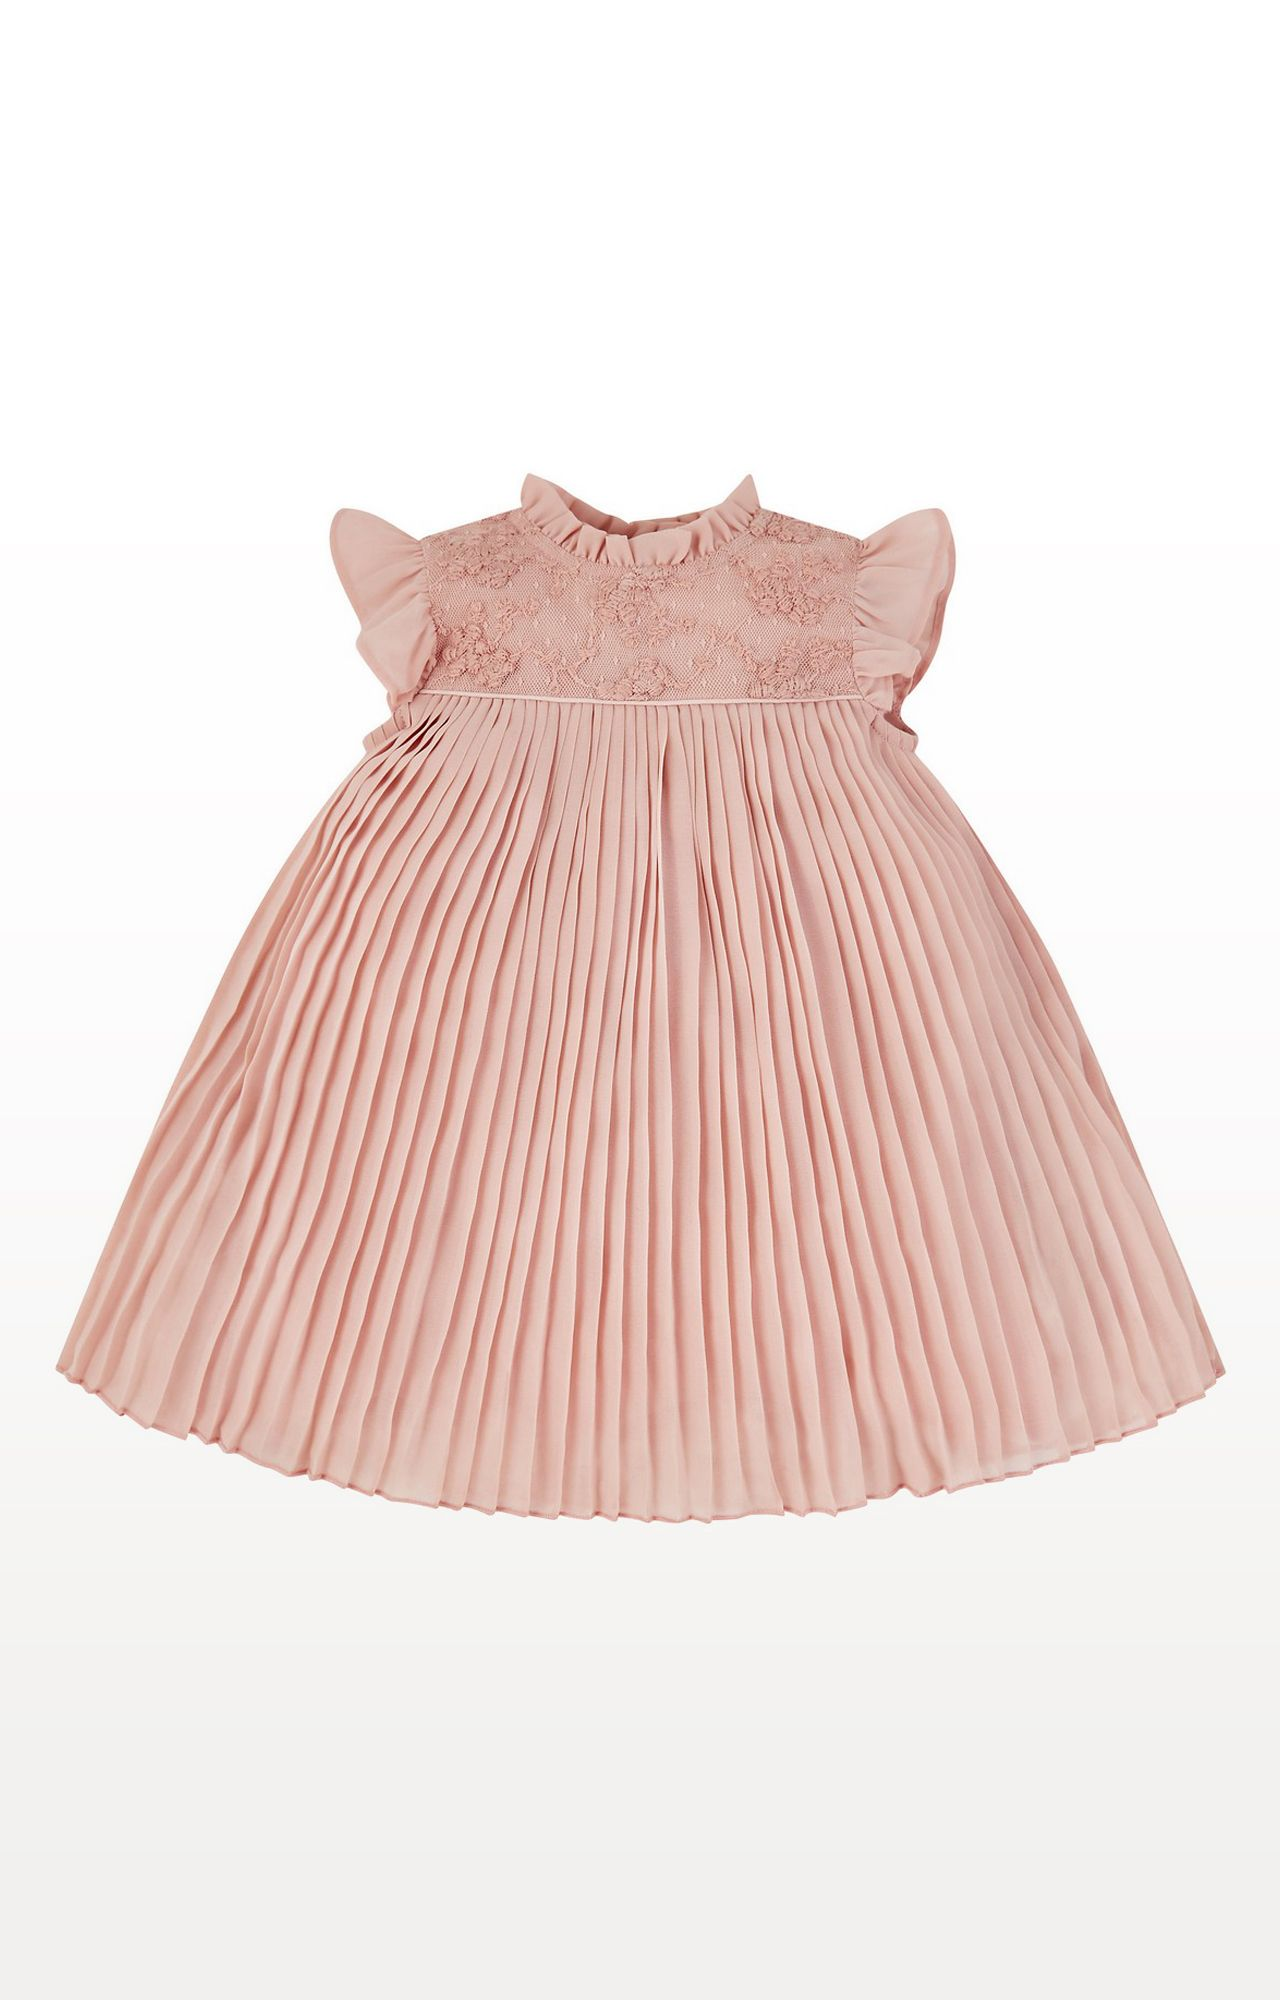 Mothercare | Pink Printed Chiffon Floral Embroidery Pleated Dress